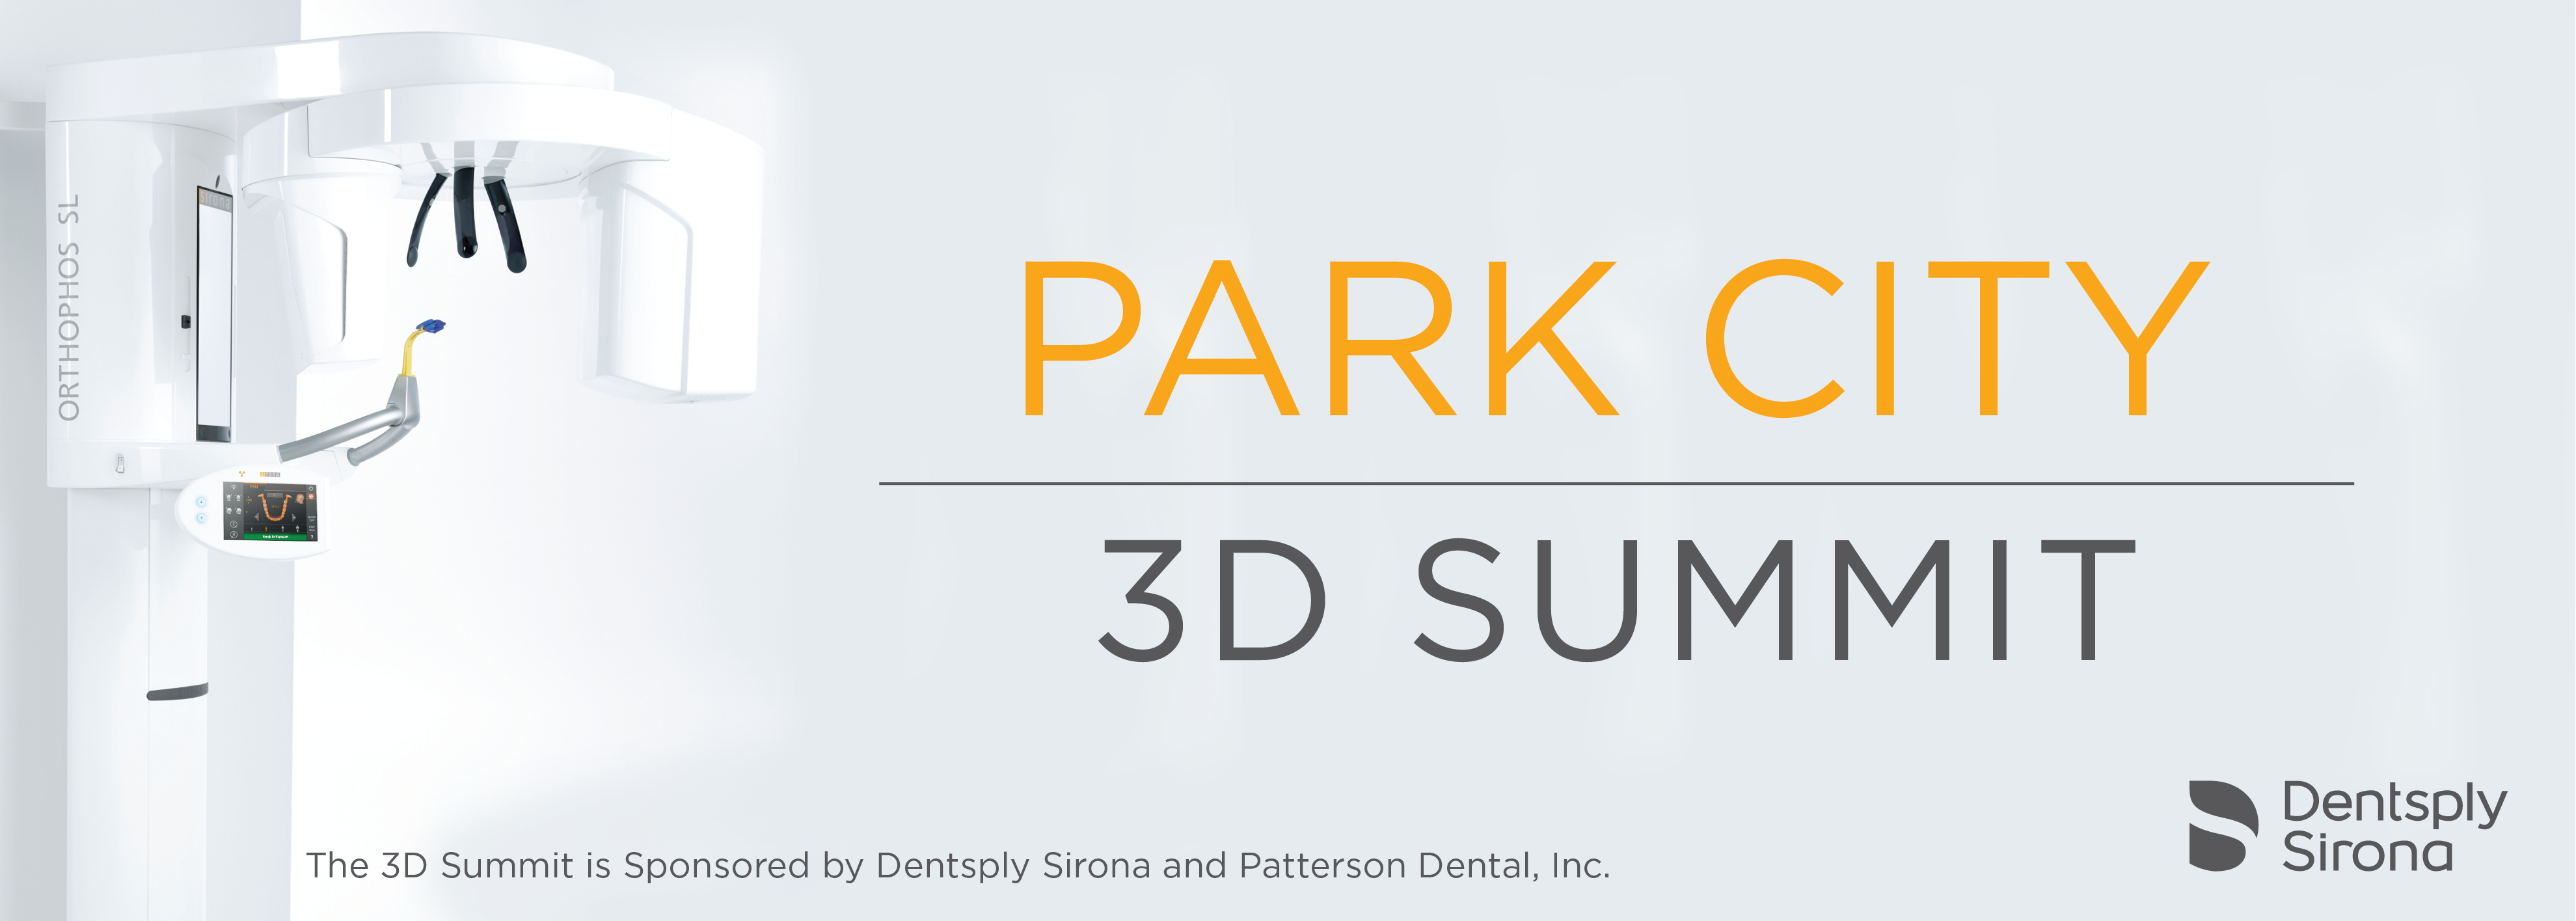 Park City 3D Summit